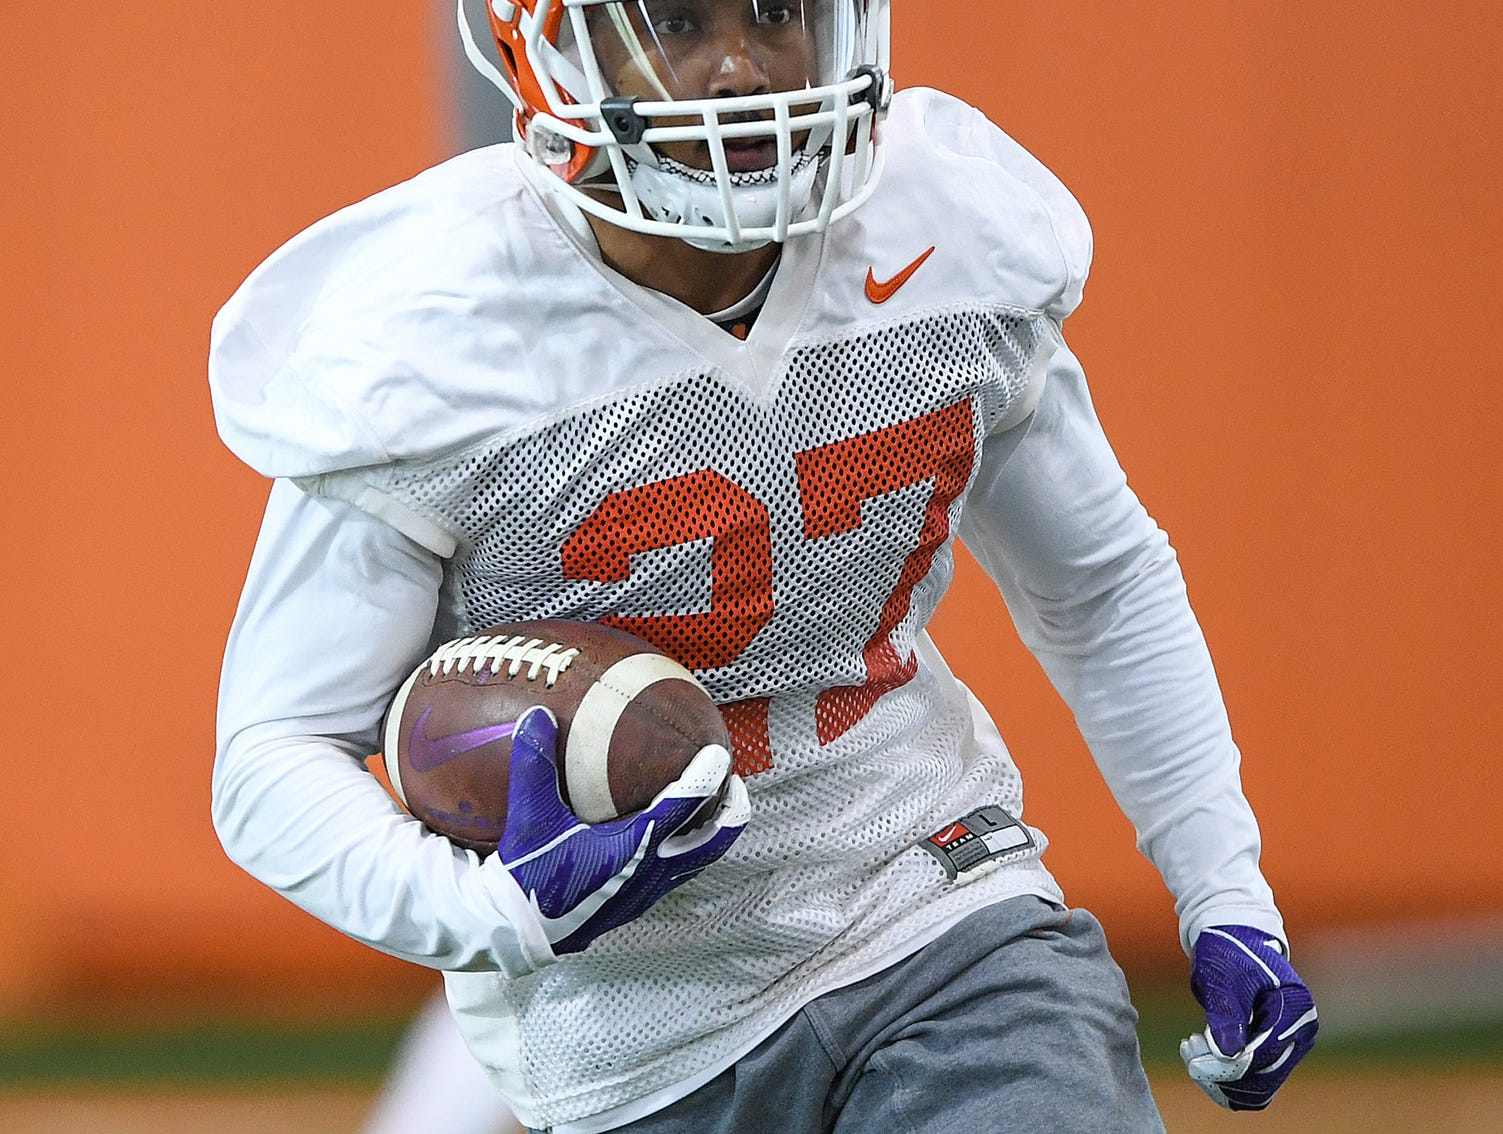 Clemson running back Ty Lucas returns a kick during the Tigers Cotton Bowl practice on Wednesday, December 12, 2018.